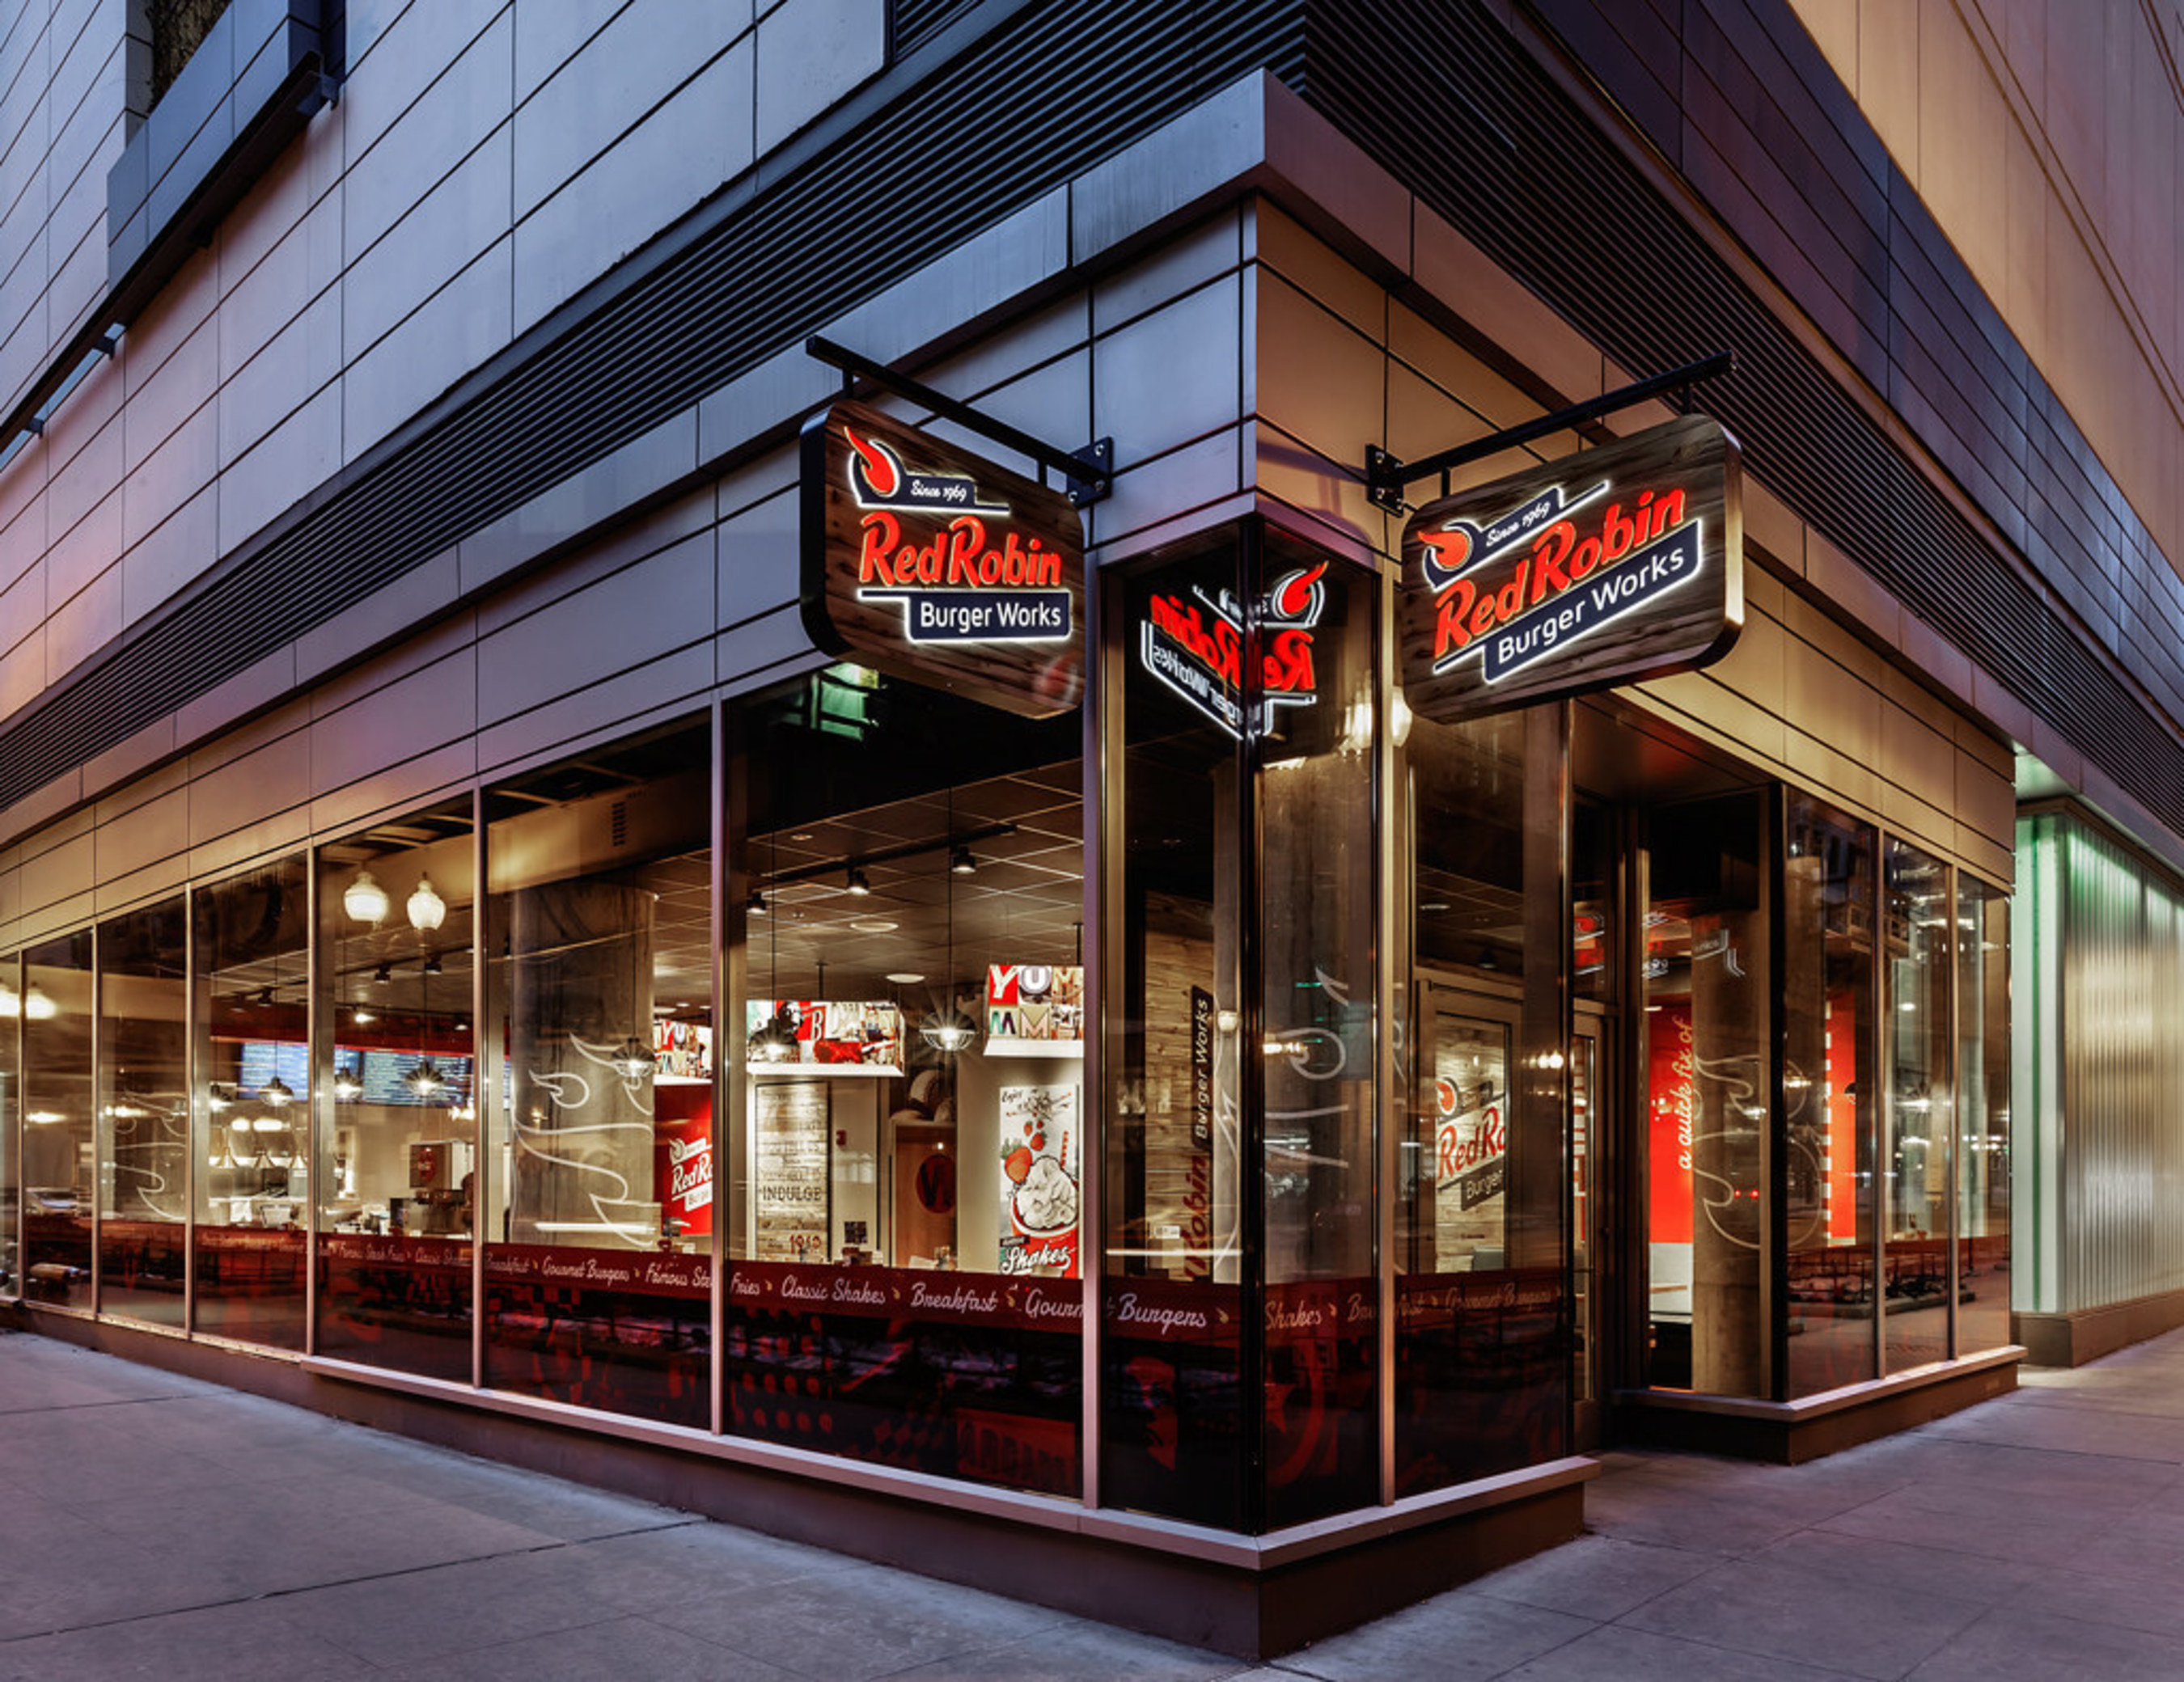 Red Robin Burger Works restaurant exterior. Red Robin Burgers Works is a smaller, fast-casual restaurant prototype operated by Red Robin Gourmet Burgers, Inc. that serves fiery, fresh food with friendly and quick service.